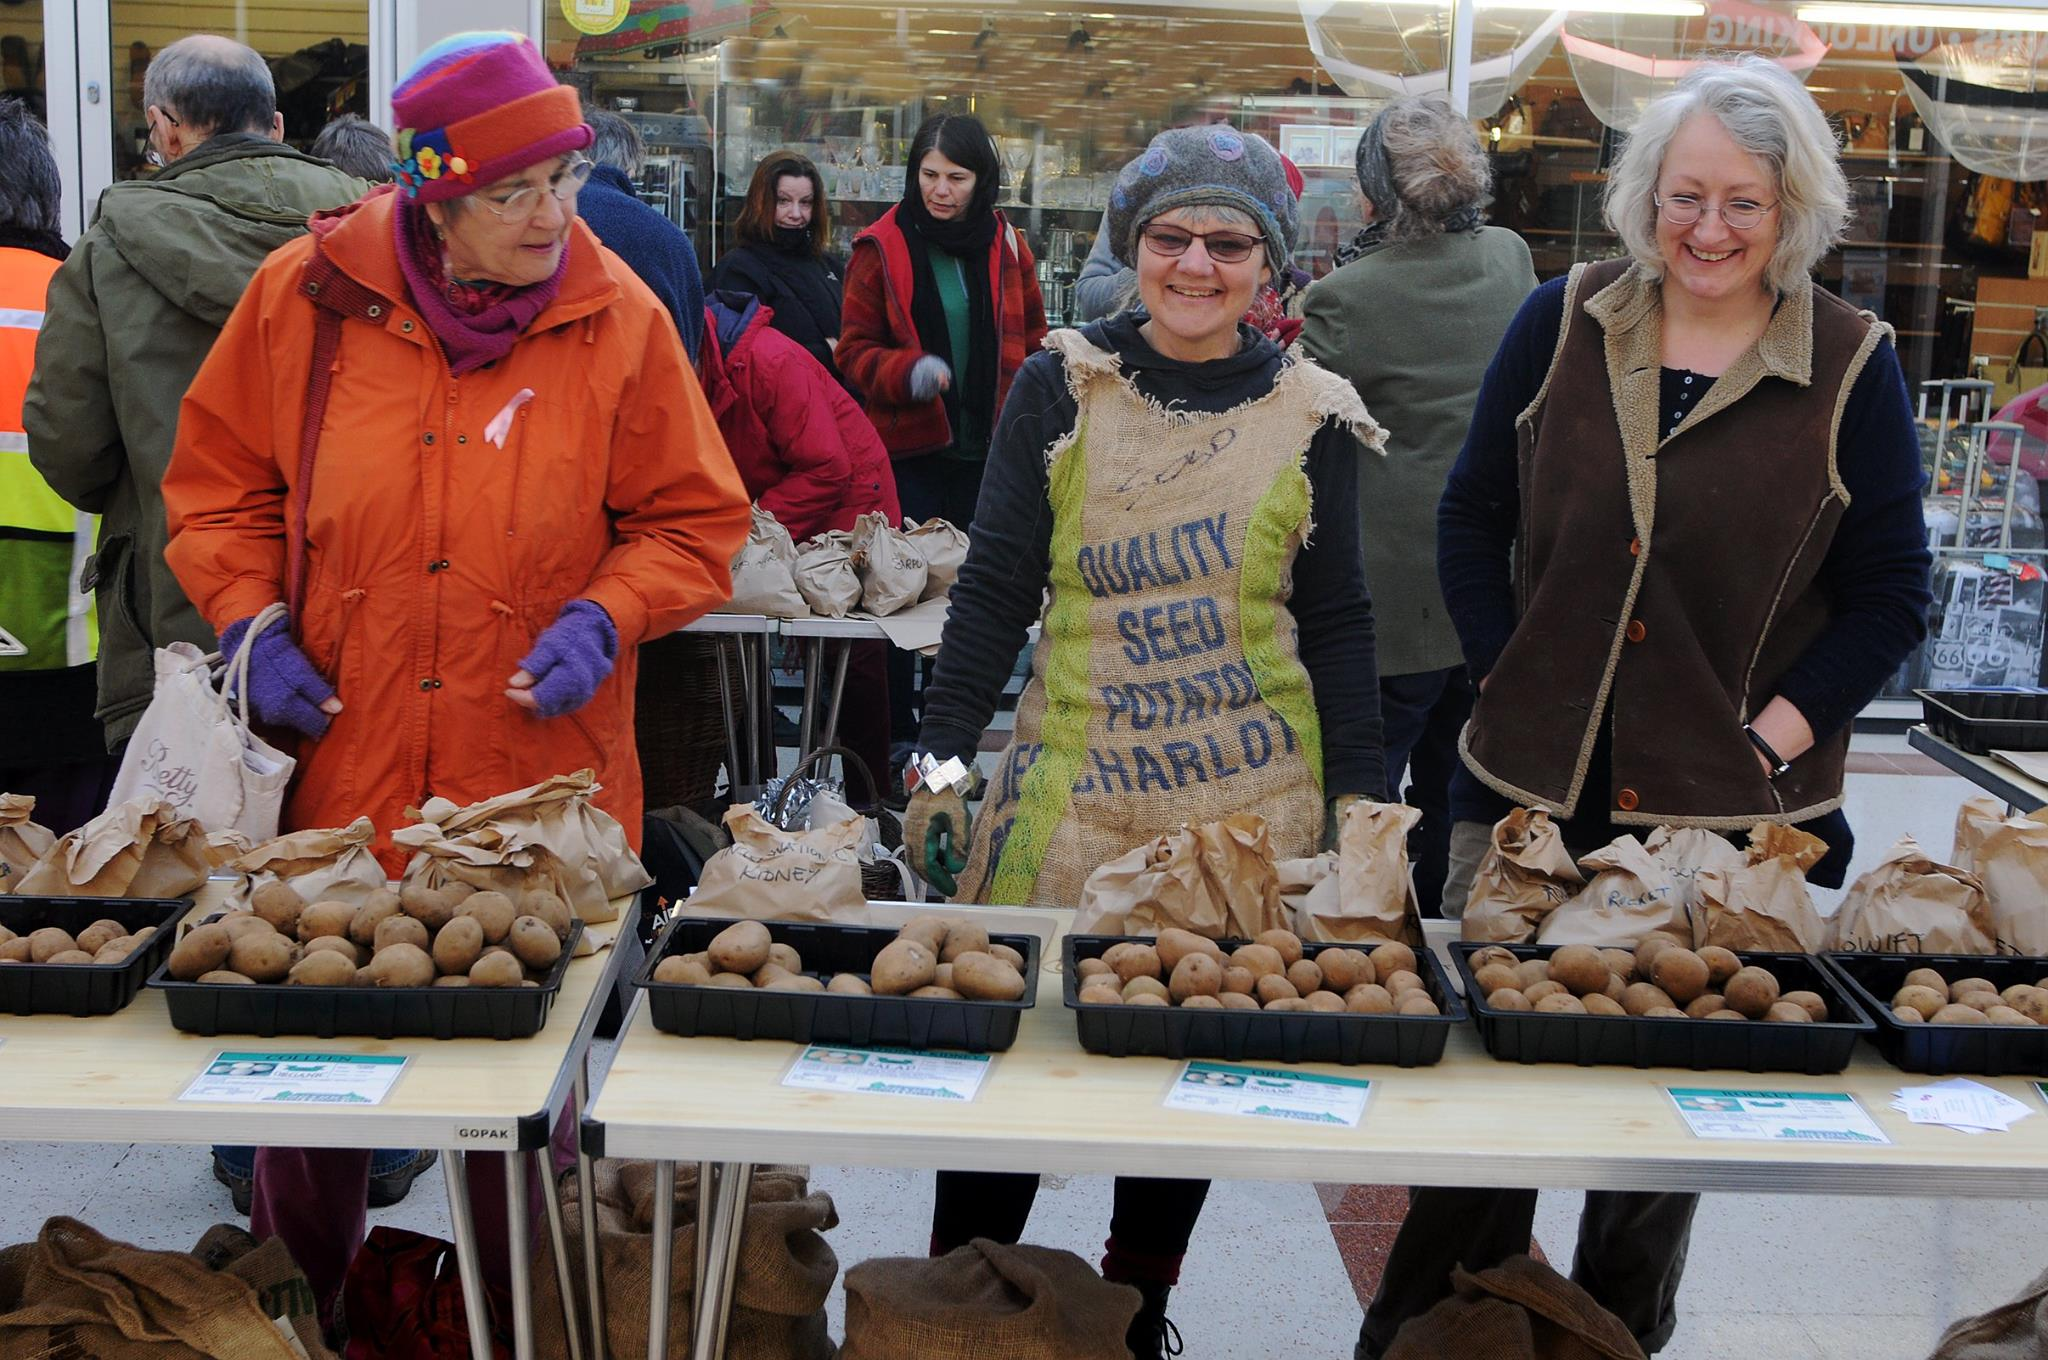 Bailey, Clare and Annie - Photographs courtesy of Simon Pizzey from Stroud Life Newspaper.